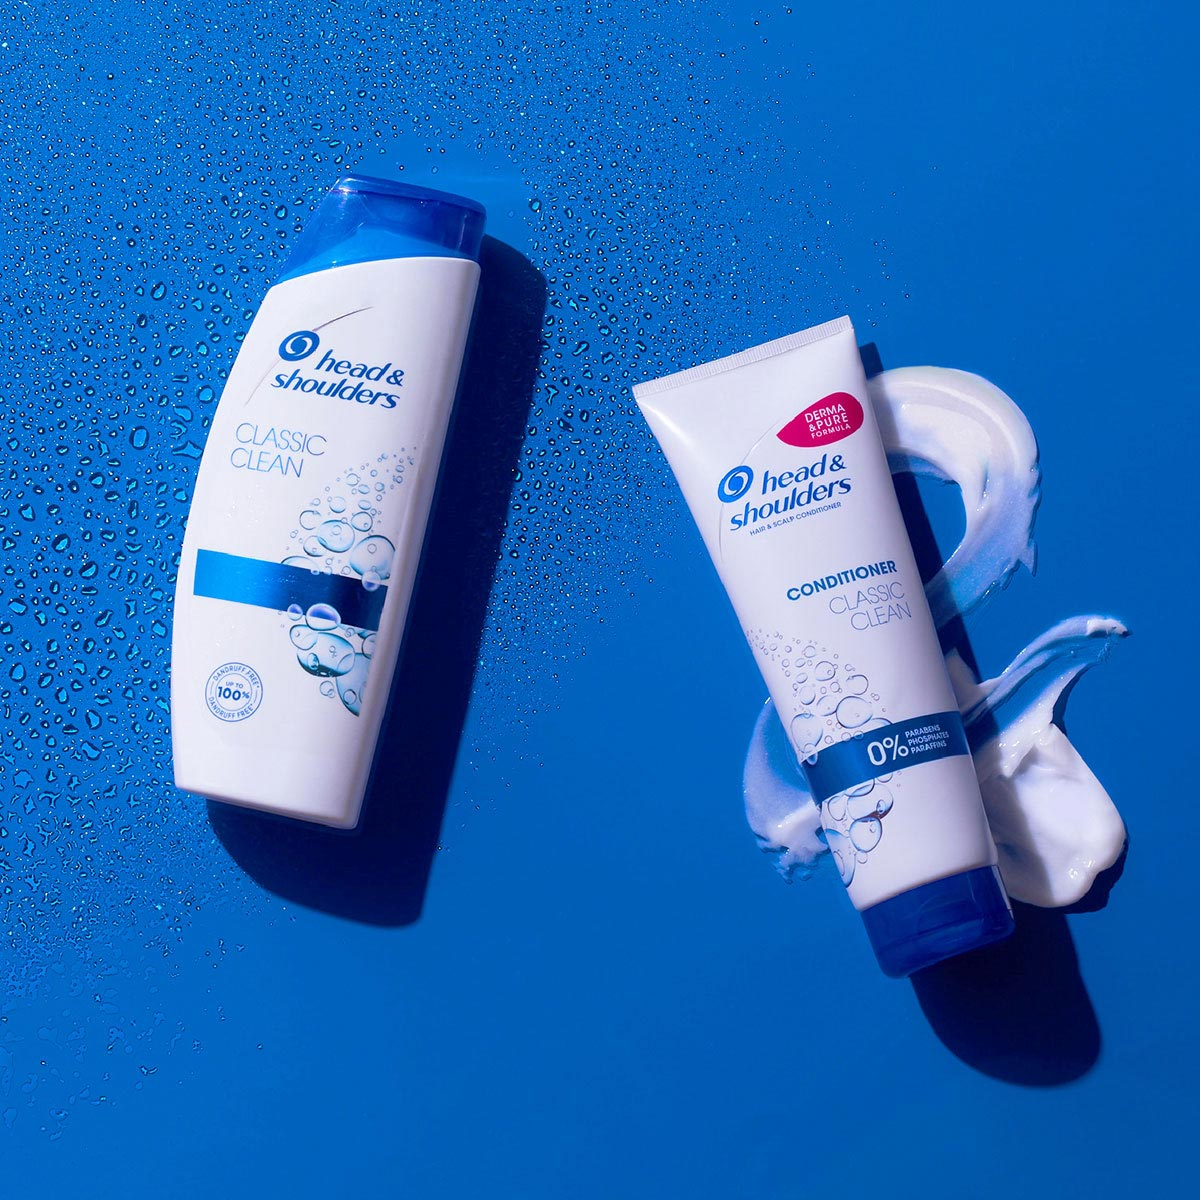 Head & Shoulders Classic Clean